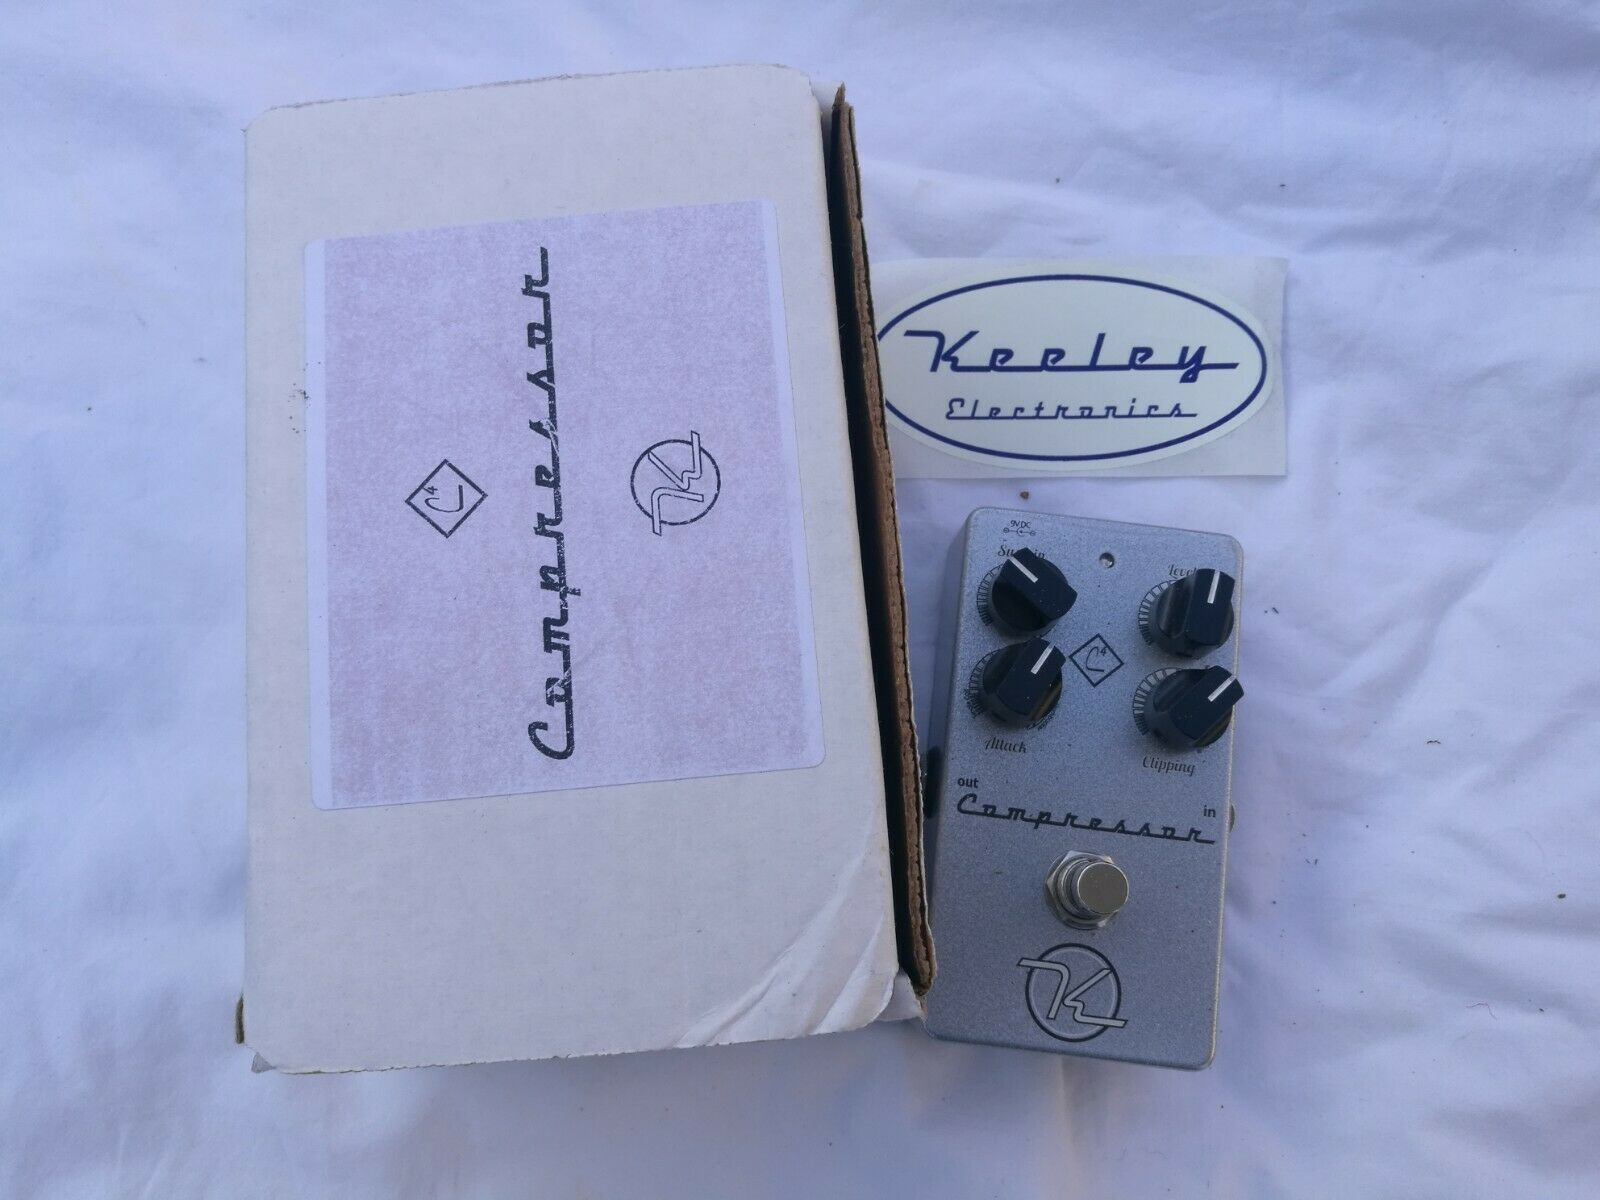 KEELEY C4 4 KNOB COMRESSOR - FREE NEXT DAY DELIVERY IN THE UK